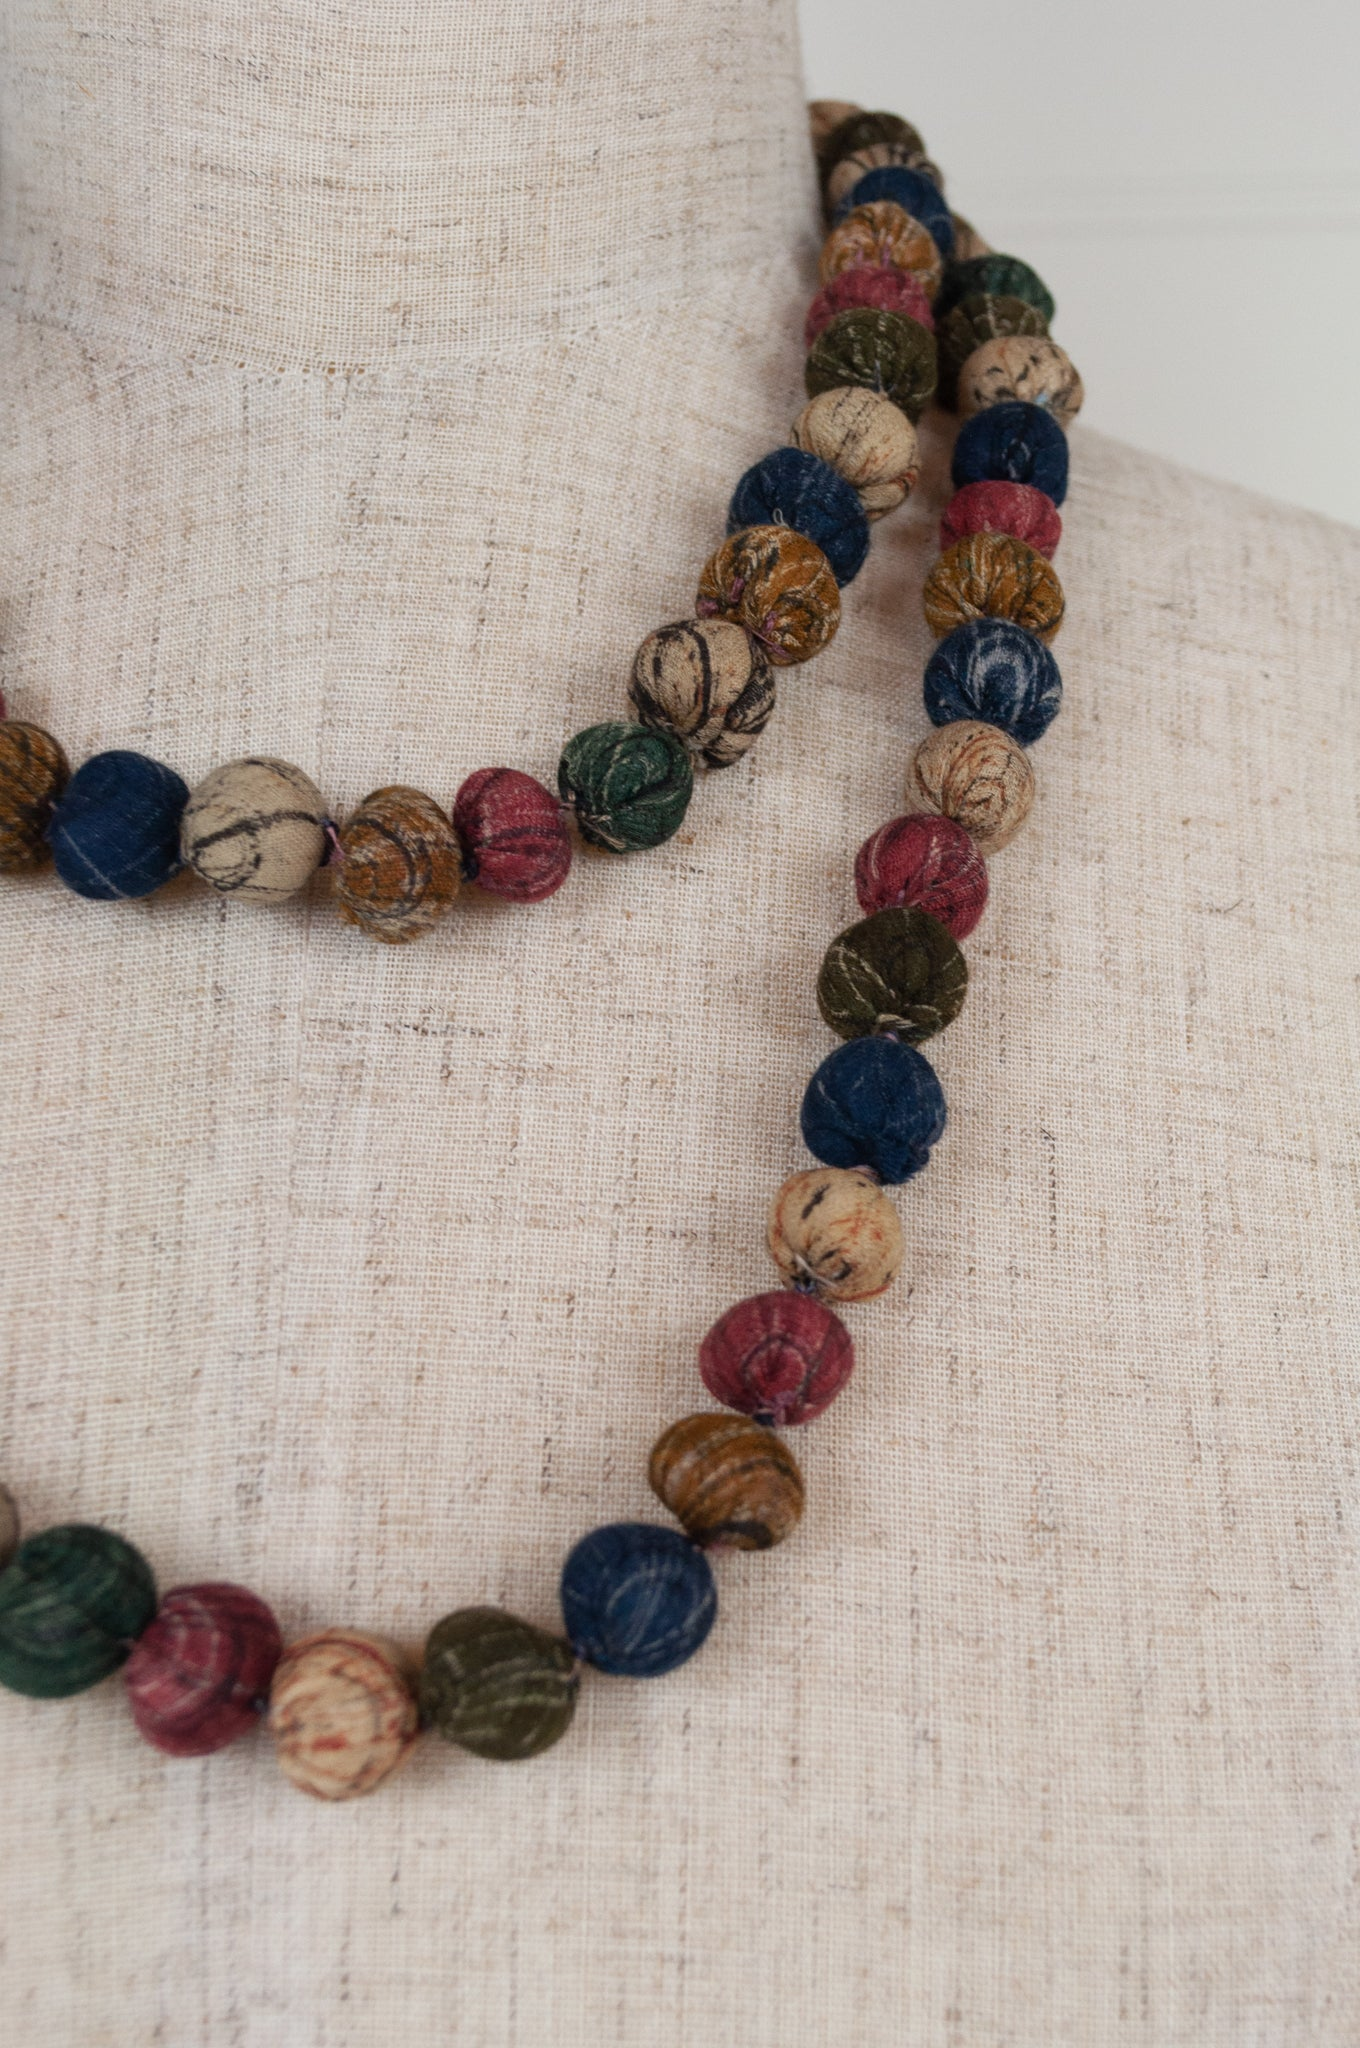 This beautiful necklace is made from handpainted fabric remnants, each bead formed by hand, filled with smaller pieces of fabric and thread, in earthy tones.